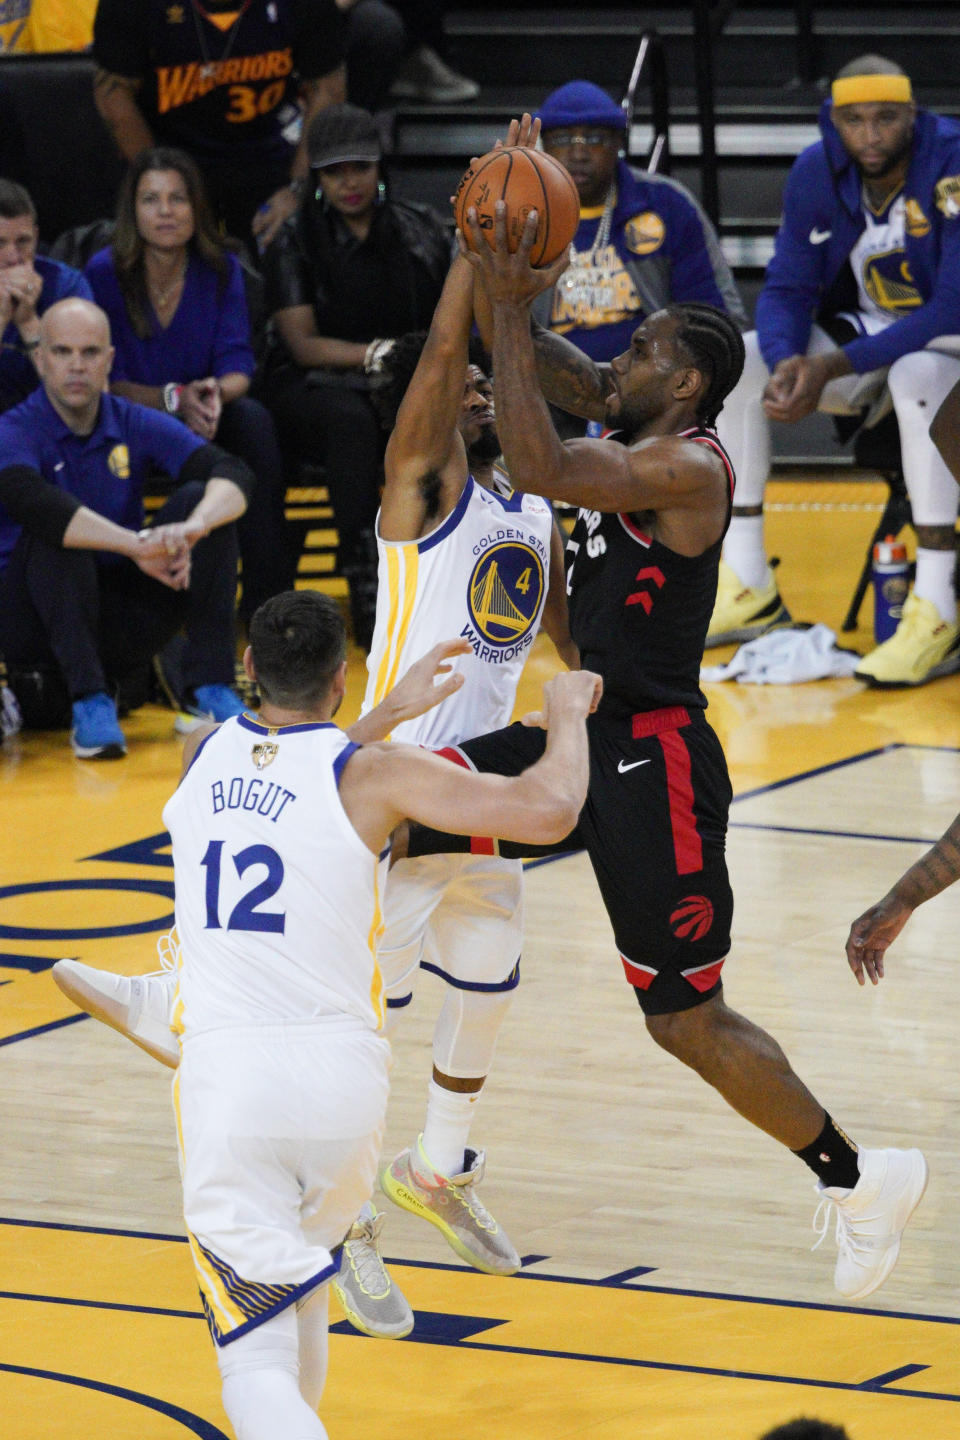 Toronto Raptors forward Kawhi Leonard, right, shoots against Golden State Warriors guard Quinn Cook (4) during the first half of Game 3 of basketball's NBA Finals in Oakland, Calif., Wednesday, June 5, 2019. (AP Photo/Tony Avelar)